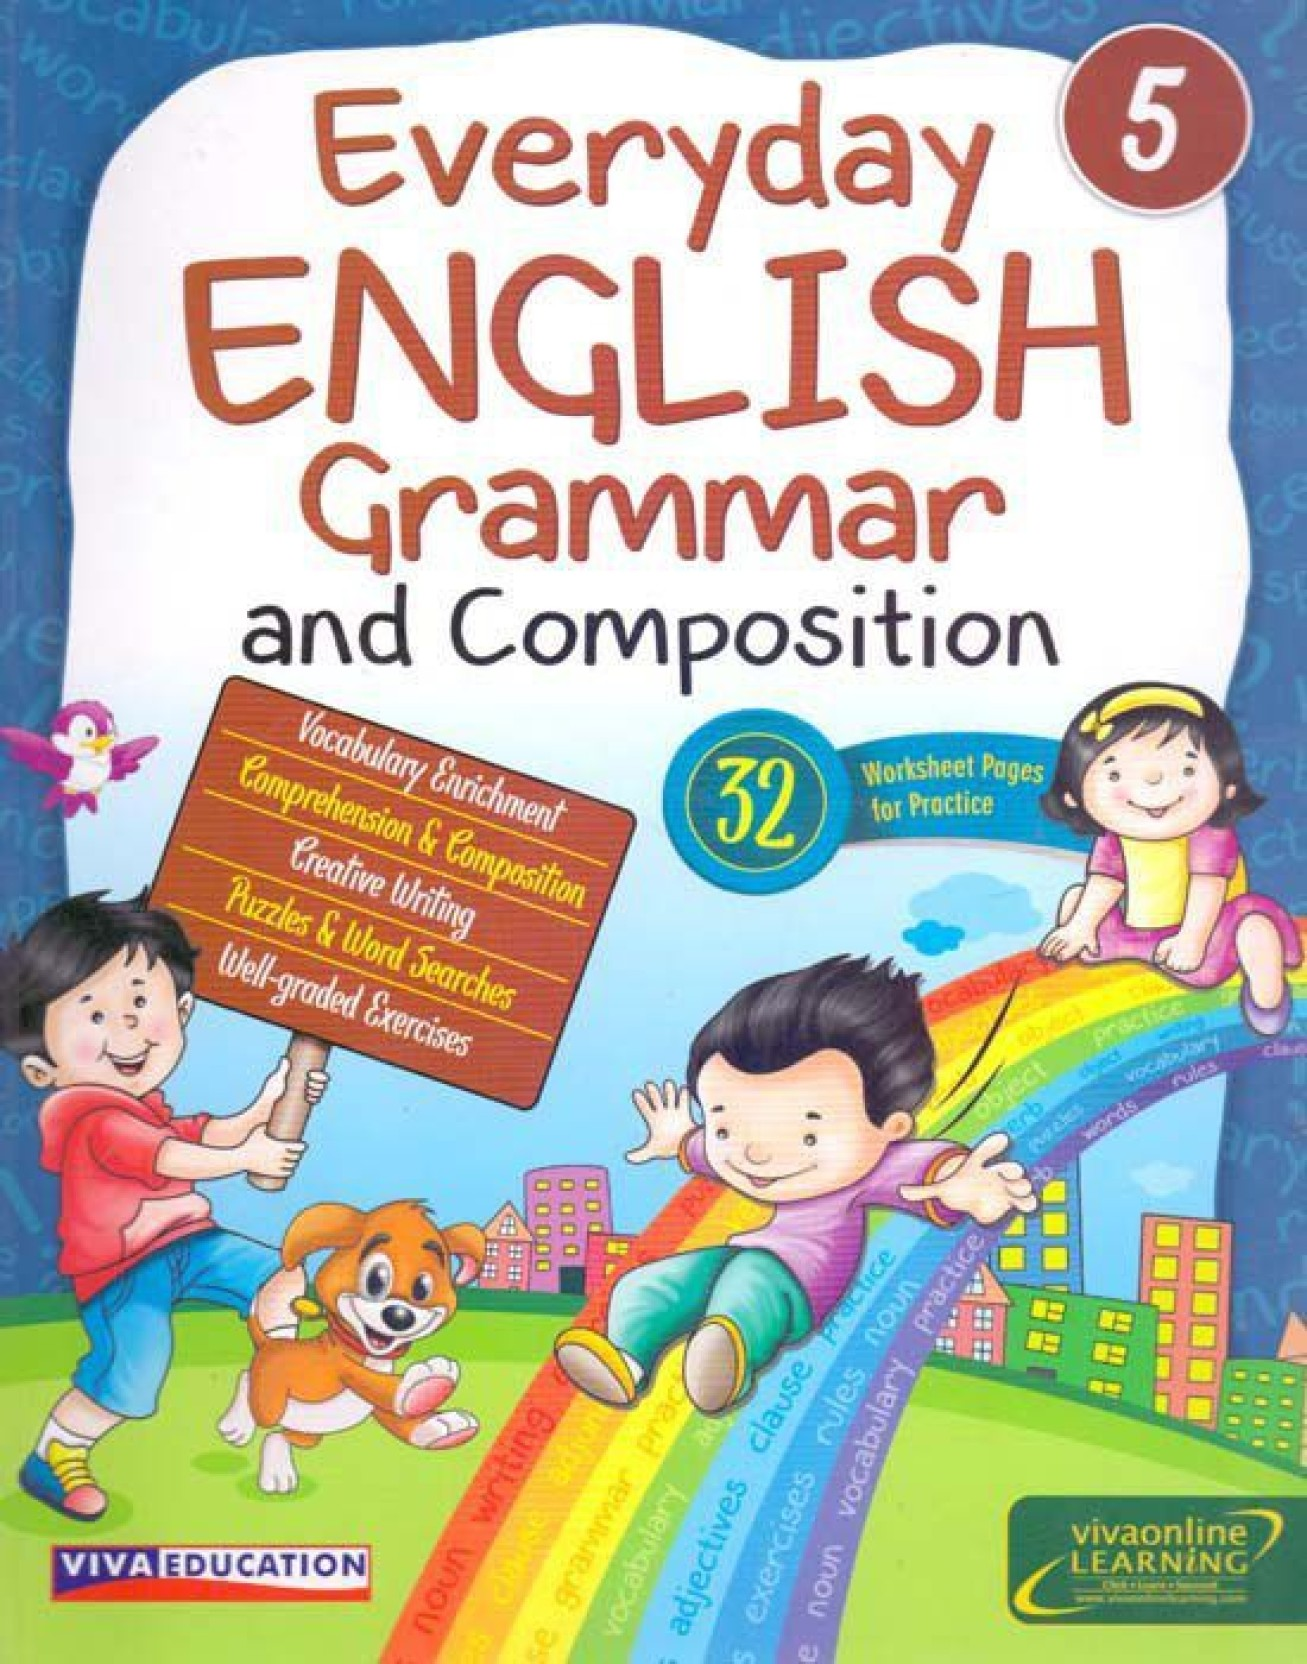 Everyday English Grammar and Composition Class - 5: Buy